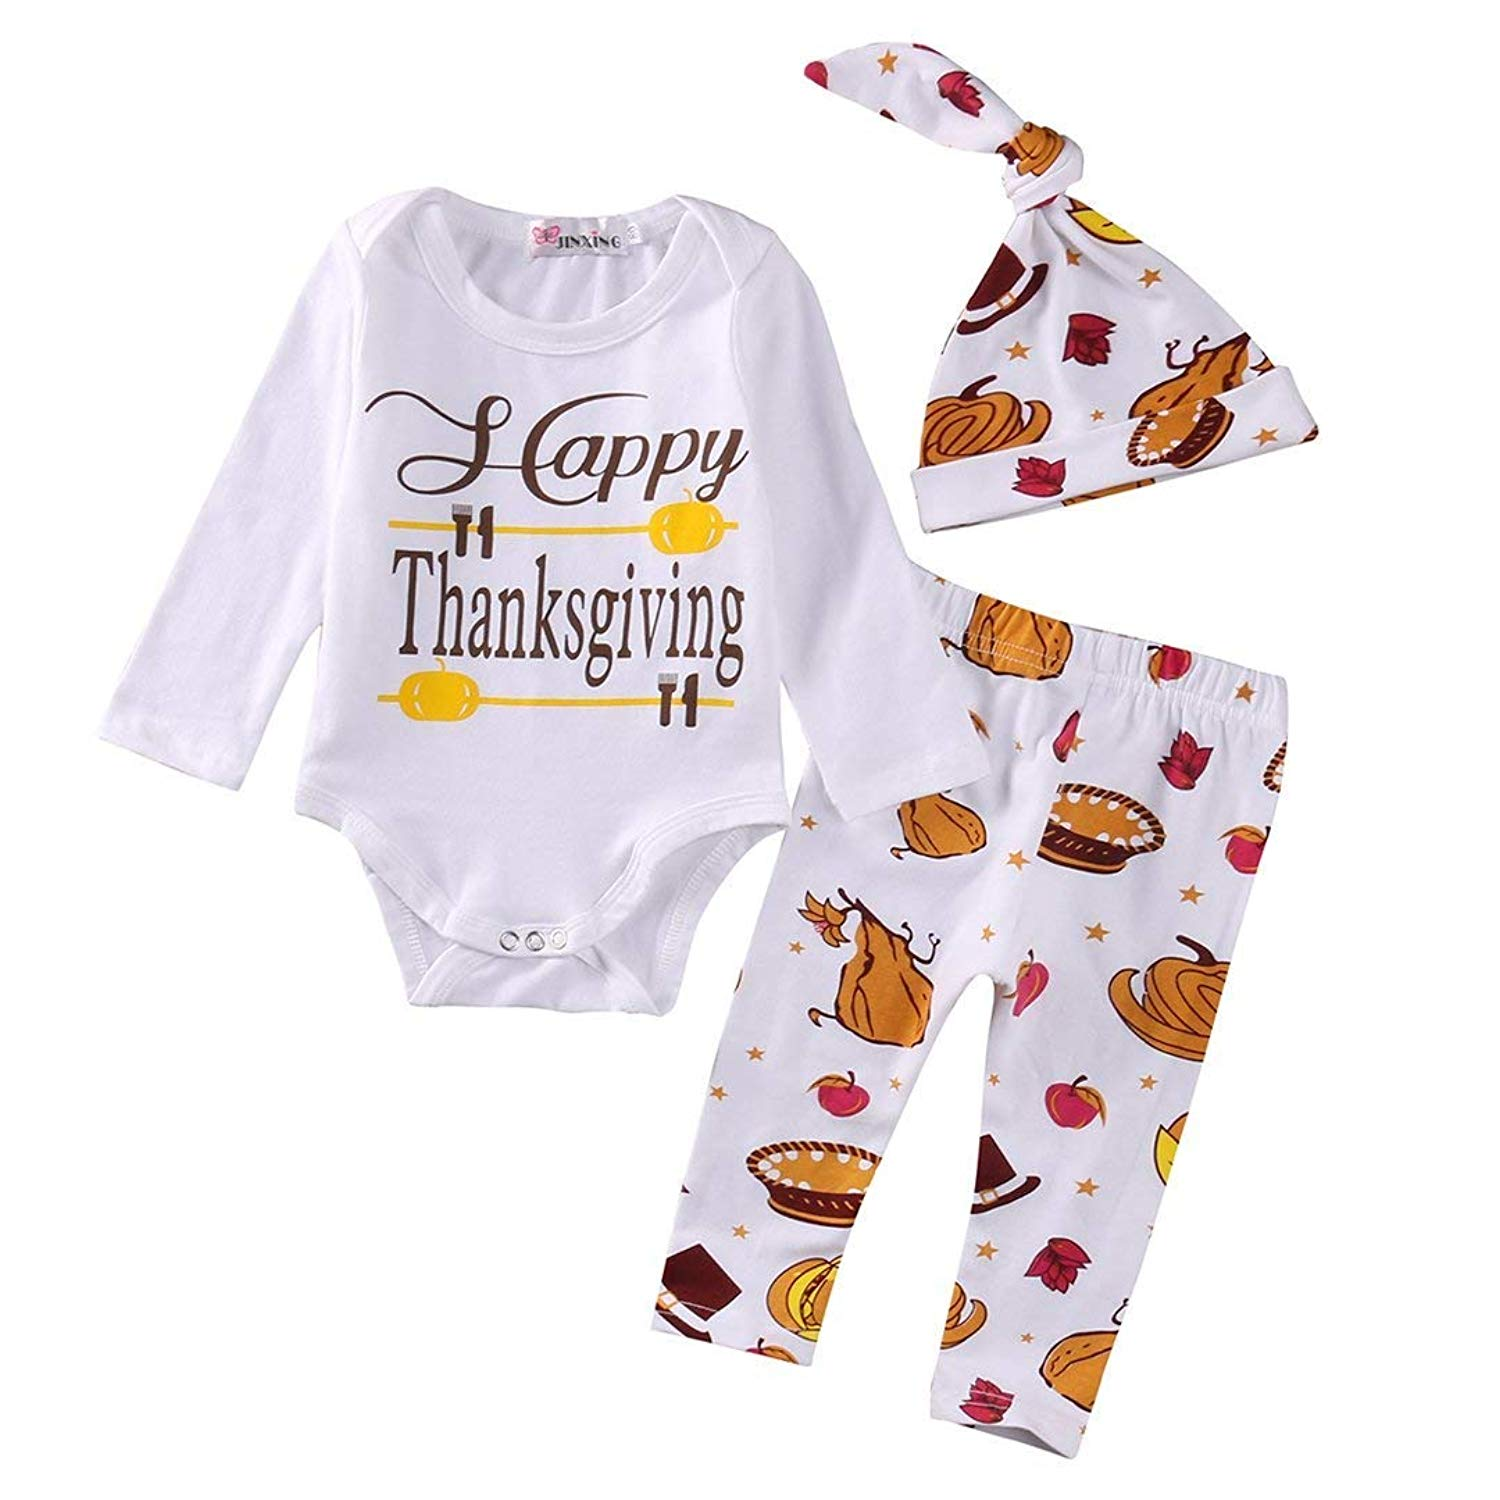 36b99ae5d700a Thanksgiving Outfit Newborn Baby Boy Girl My First Thanksgiving Romper  Turkey 4pcs Clothes Set